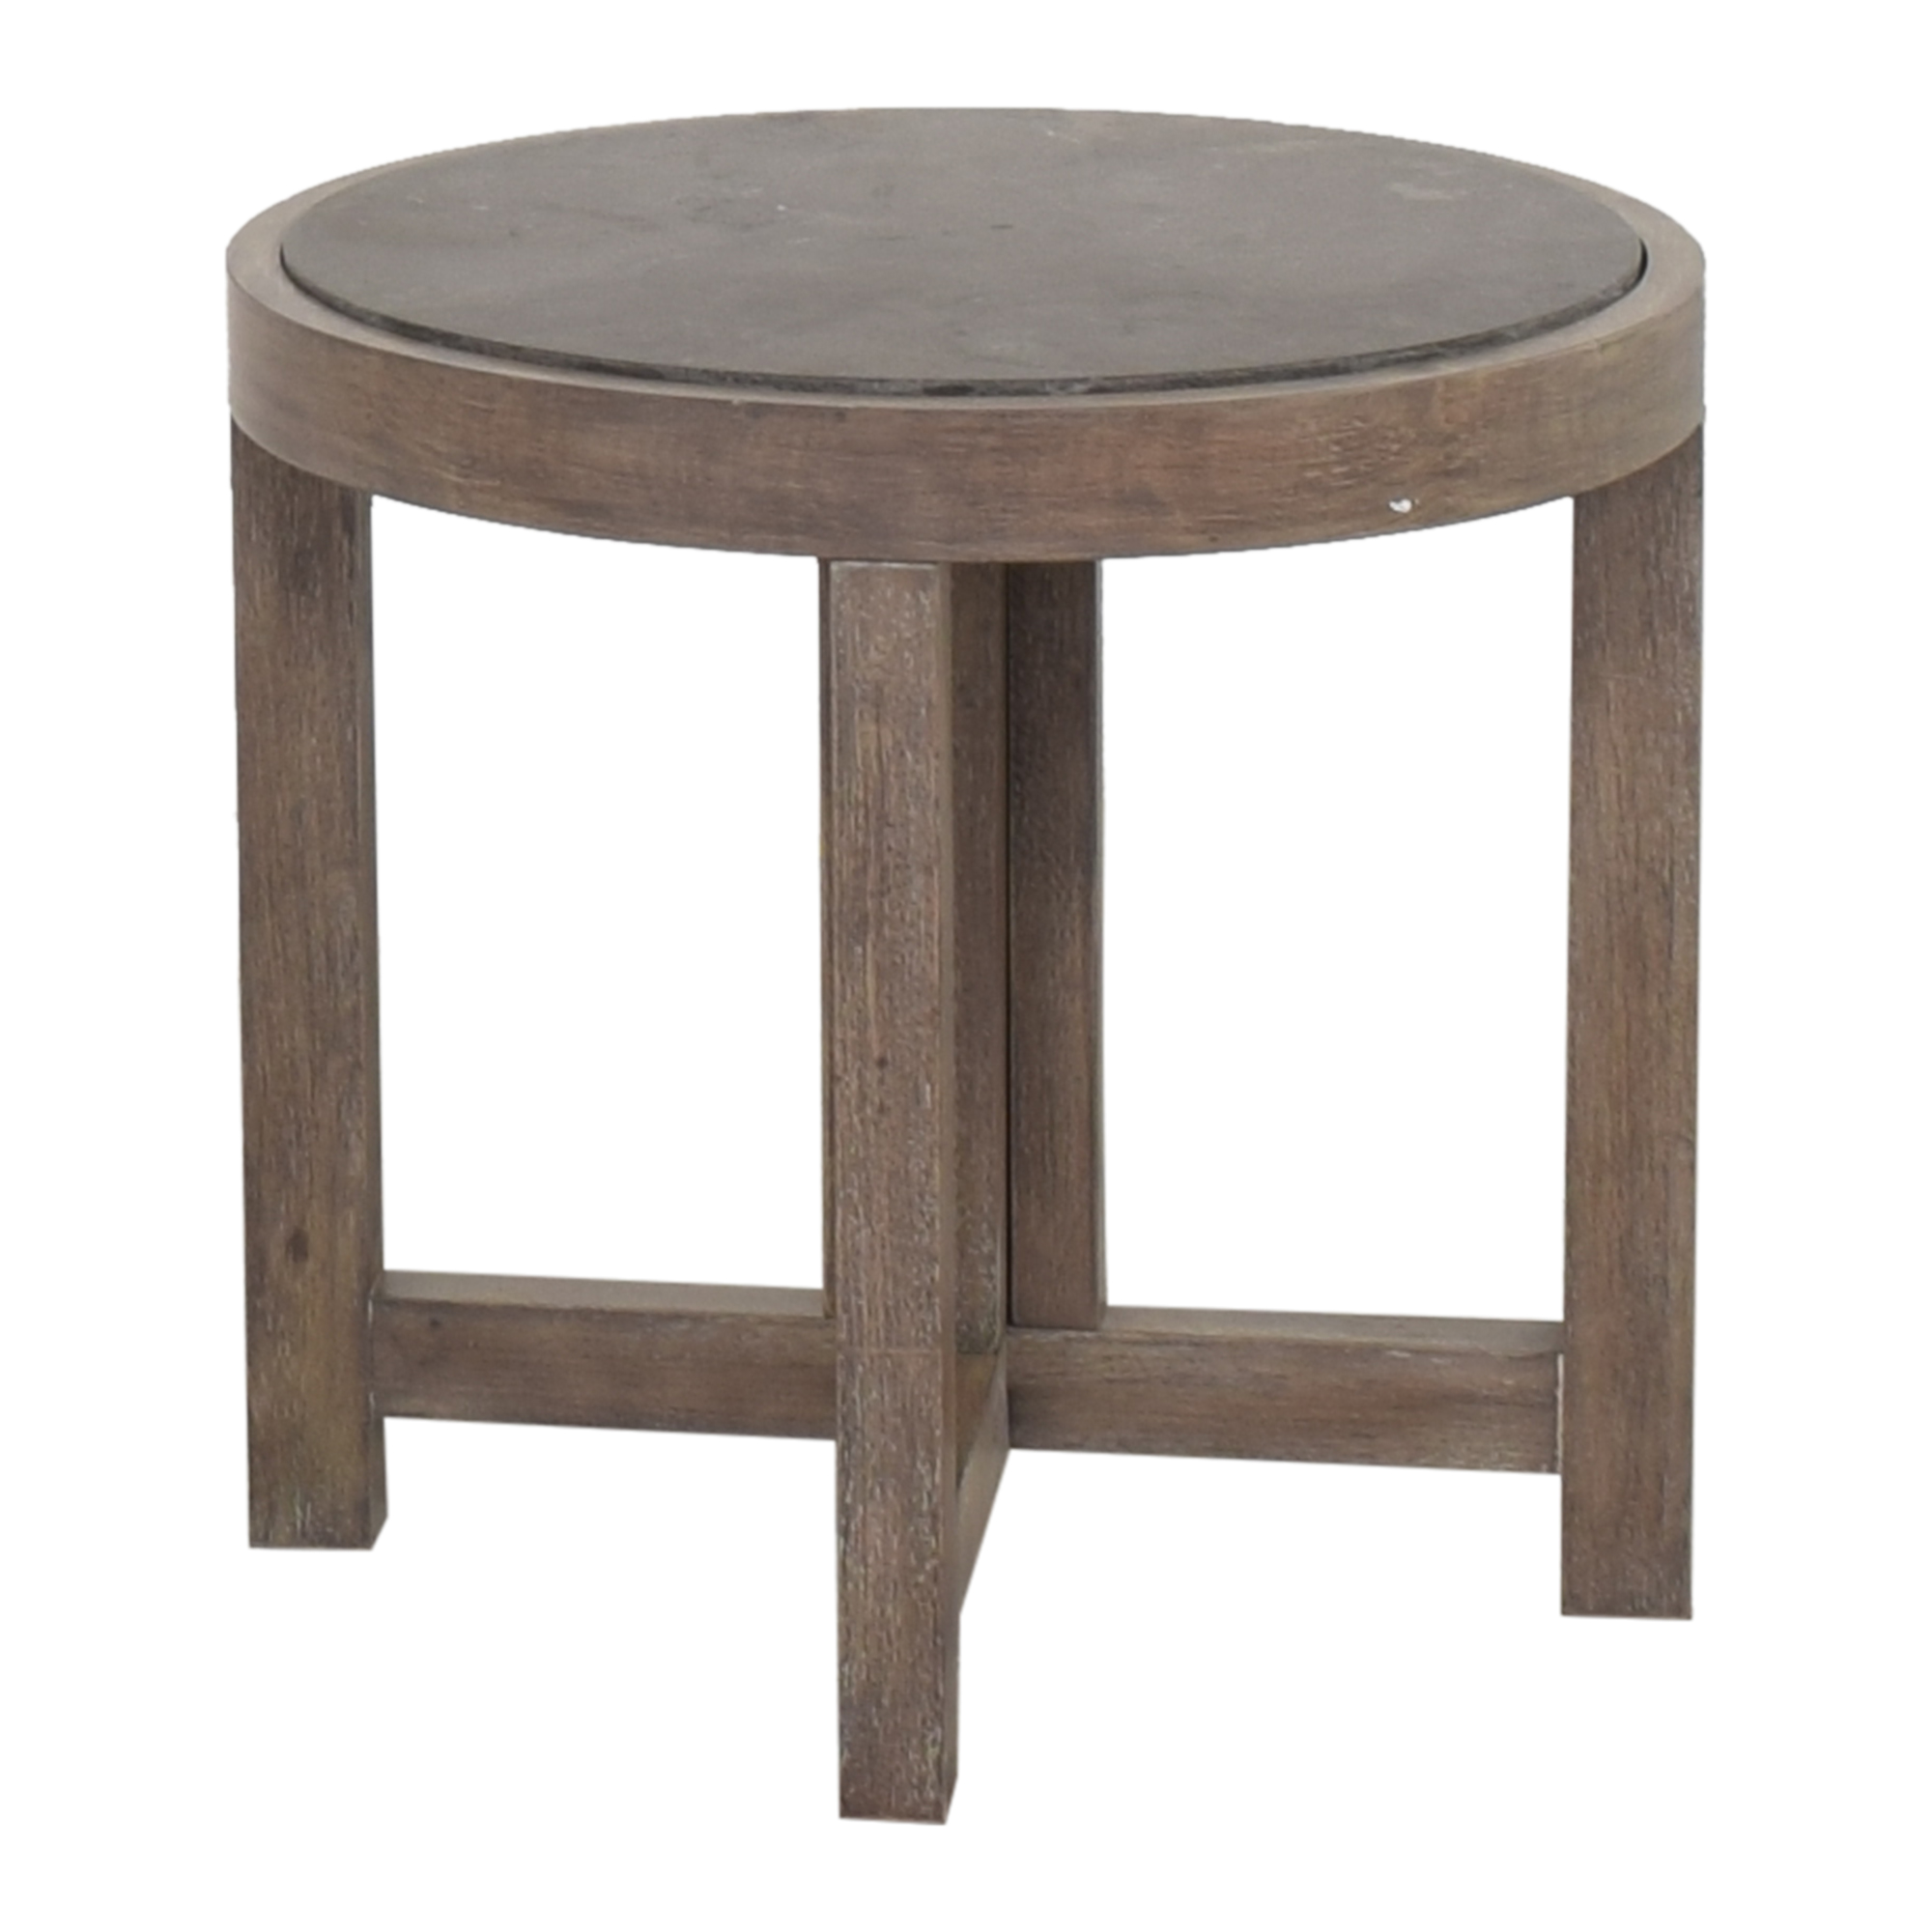 buy Bassett Furniture Compass Round Lamp Table Bassett Furniture Accent Tables